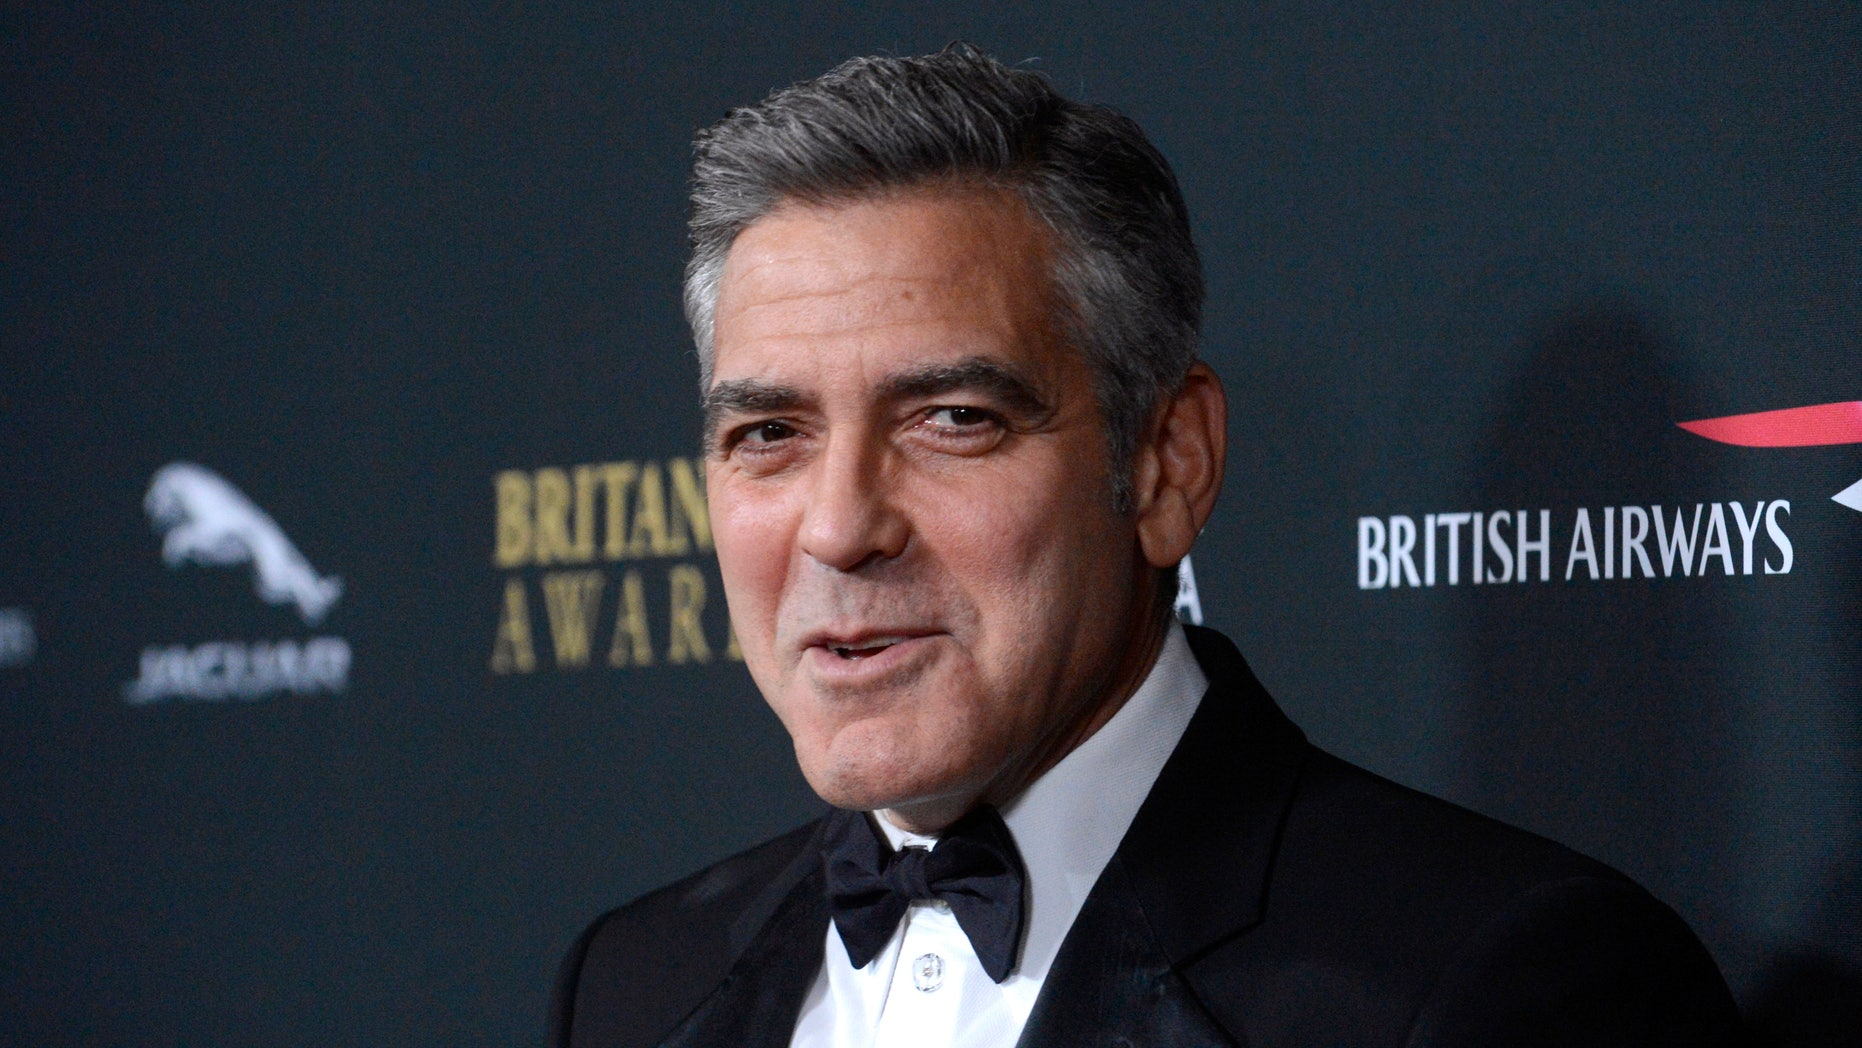 Actor George Clooney attends the BAFTA Los Angeles Britannia Awards in Beverly Hills, California  November 9, 2013. REUTERS/Phil McCarten (UNITED STATES - Tags: ENTERTAINMENT) - RTX157GT